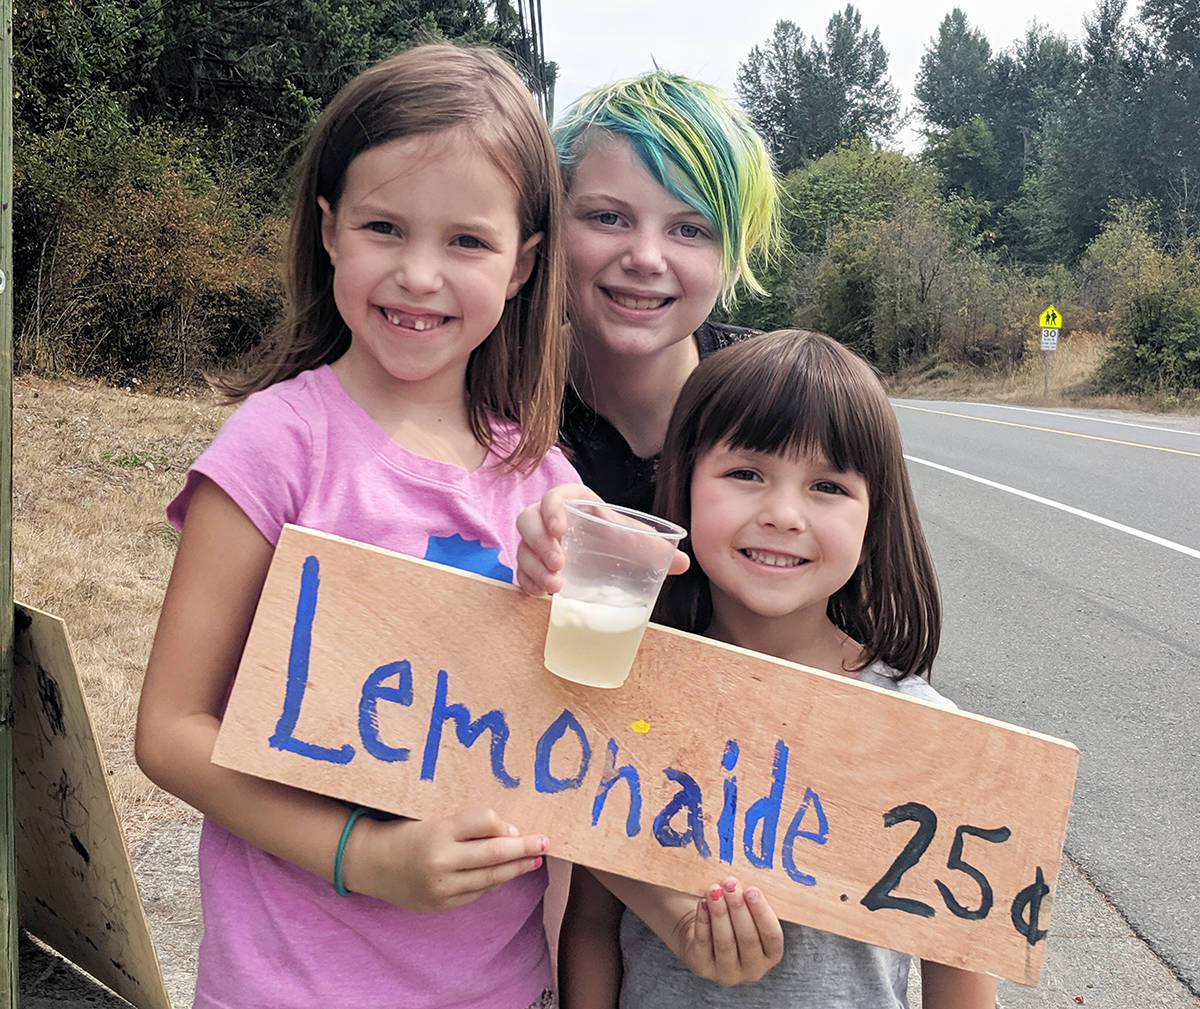 Come and get it! Abby Knight (back) and Violet and Adelaide Starr offer lemonade at a stand on Chemainus Road just like kids used to do in the olden days. (Photo by JoHannah Knight)